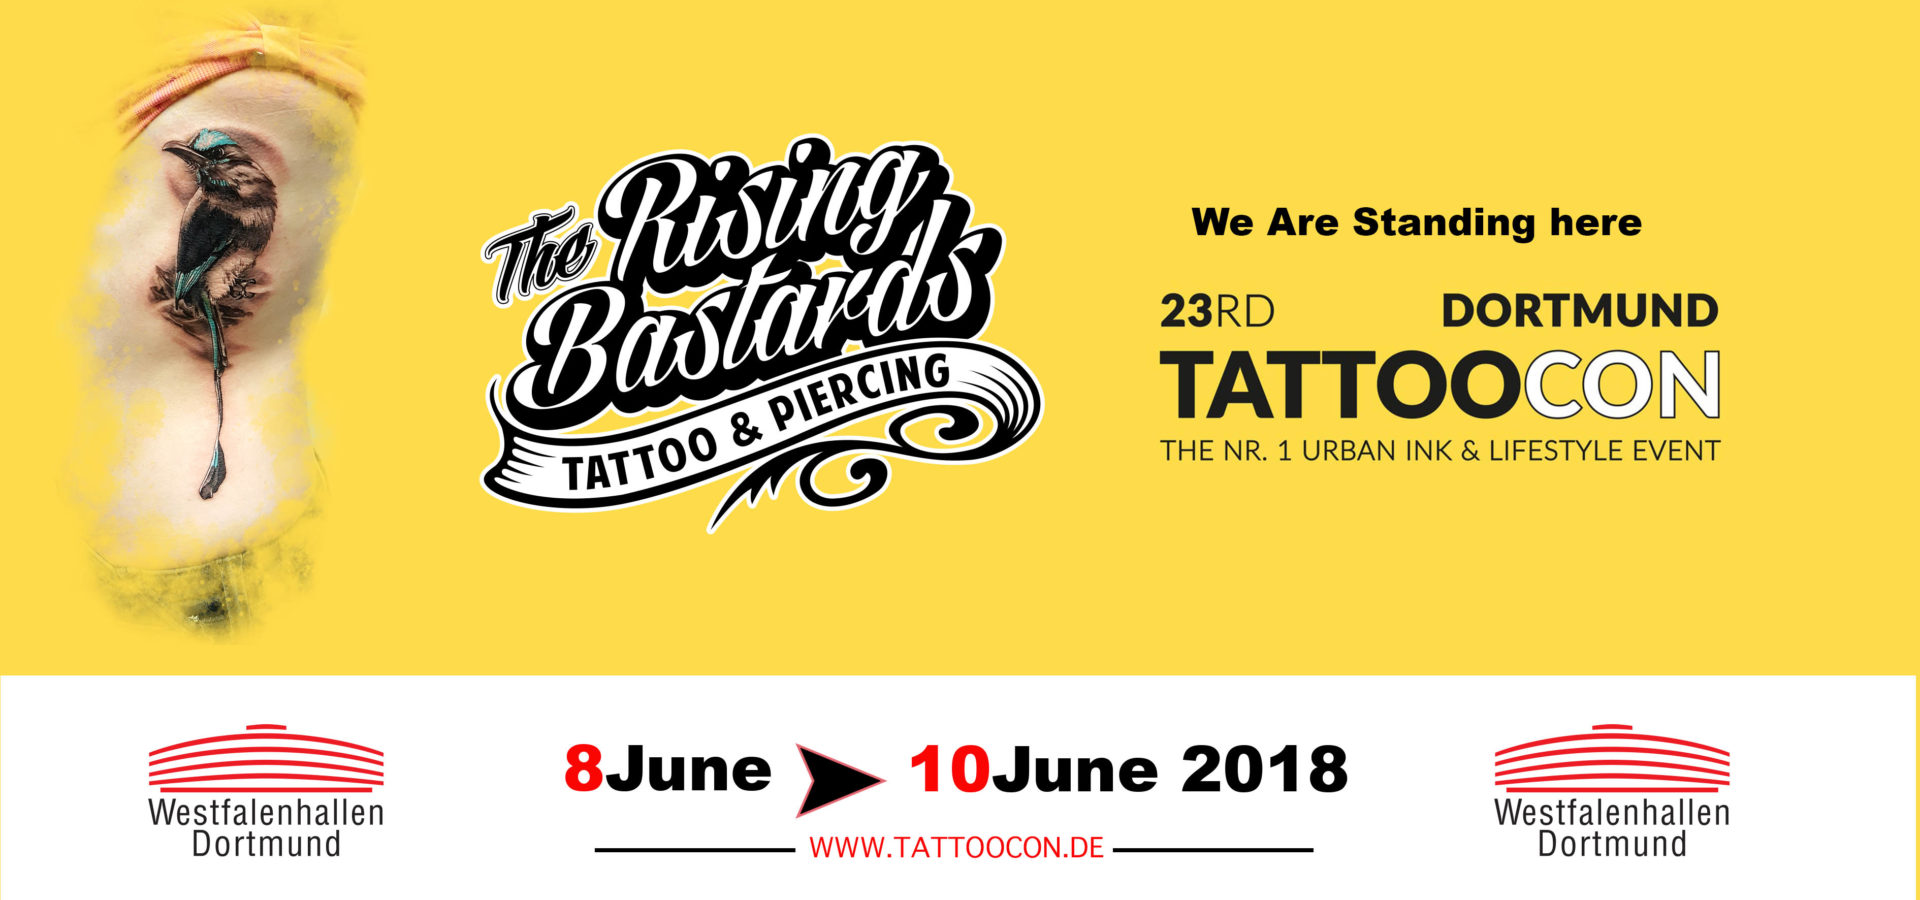 Dortmund Tattoo Convention 2018 Tattooshop Nijmegen